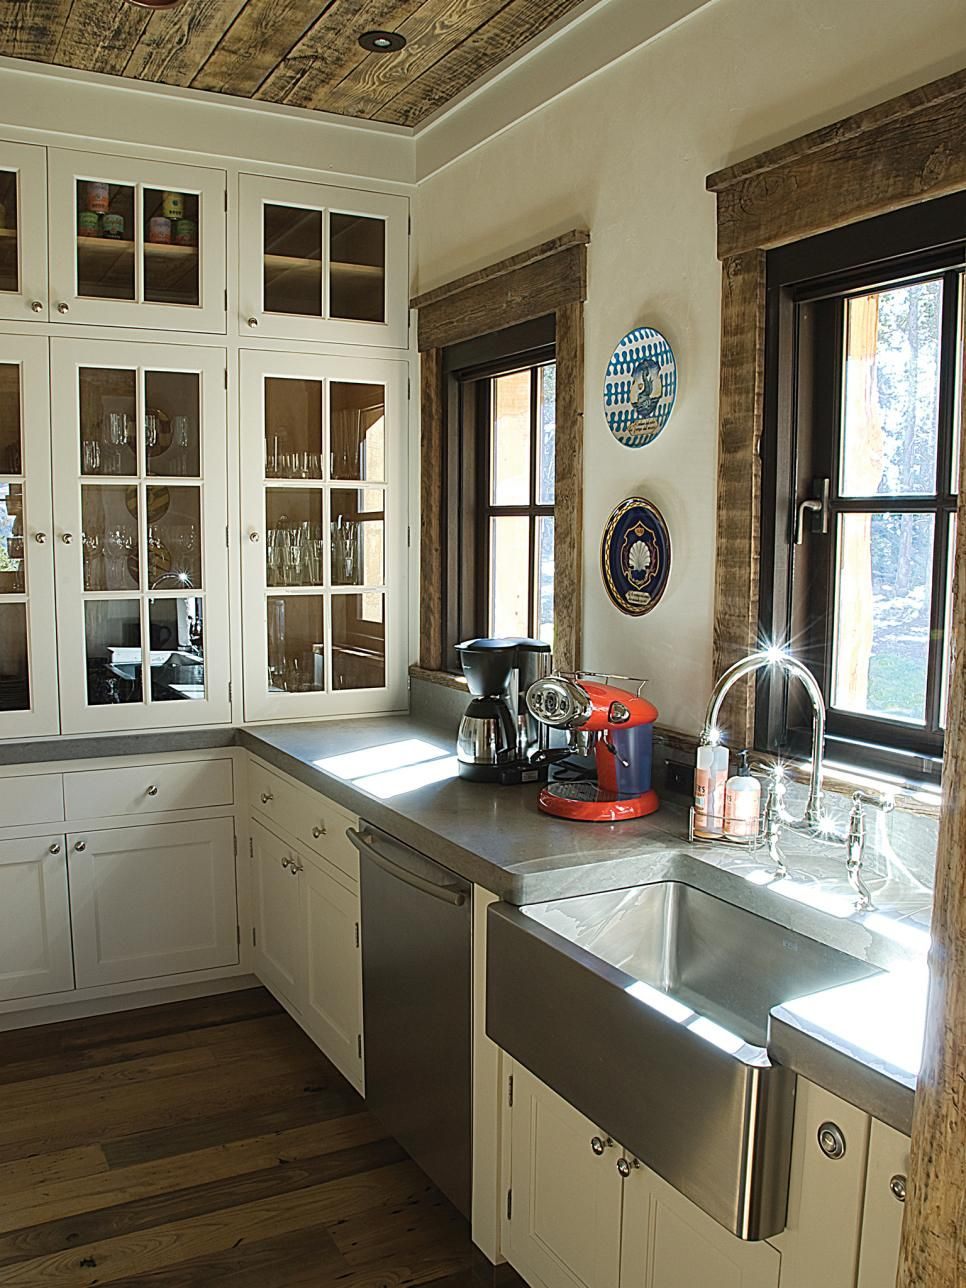 This adorable country kitchen features a tongueandgroove